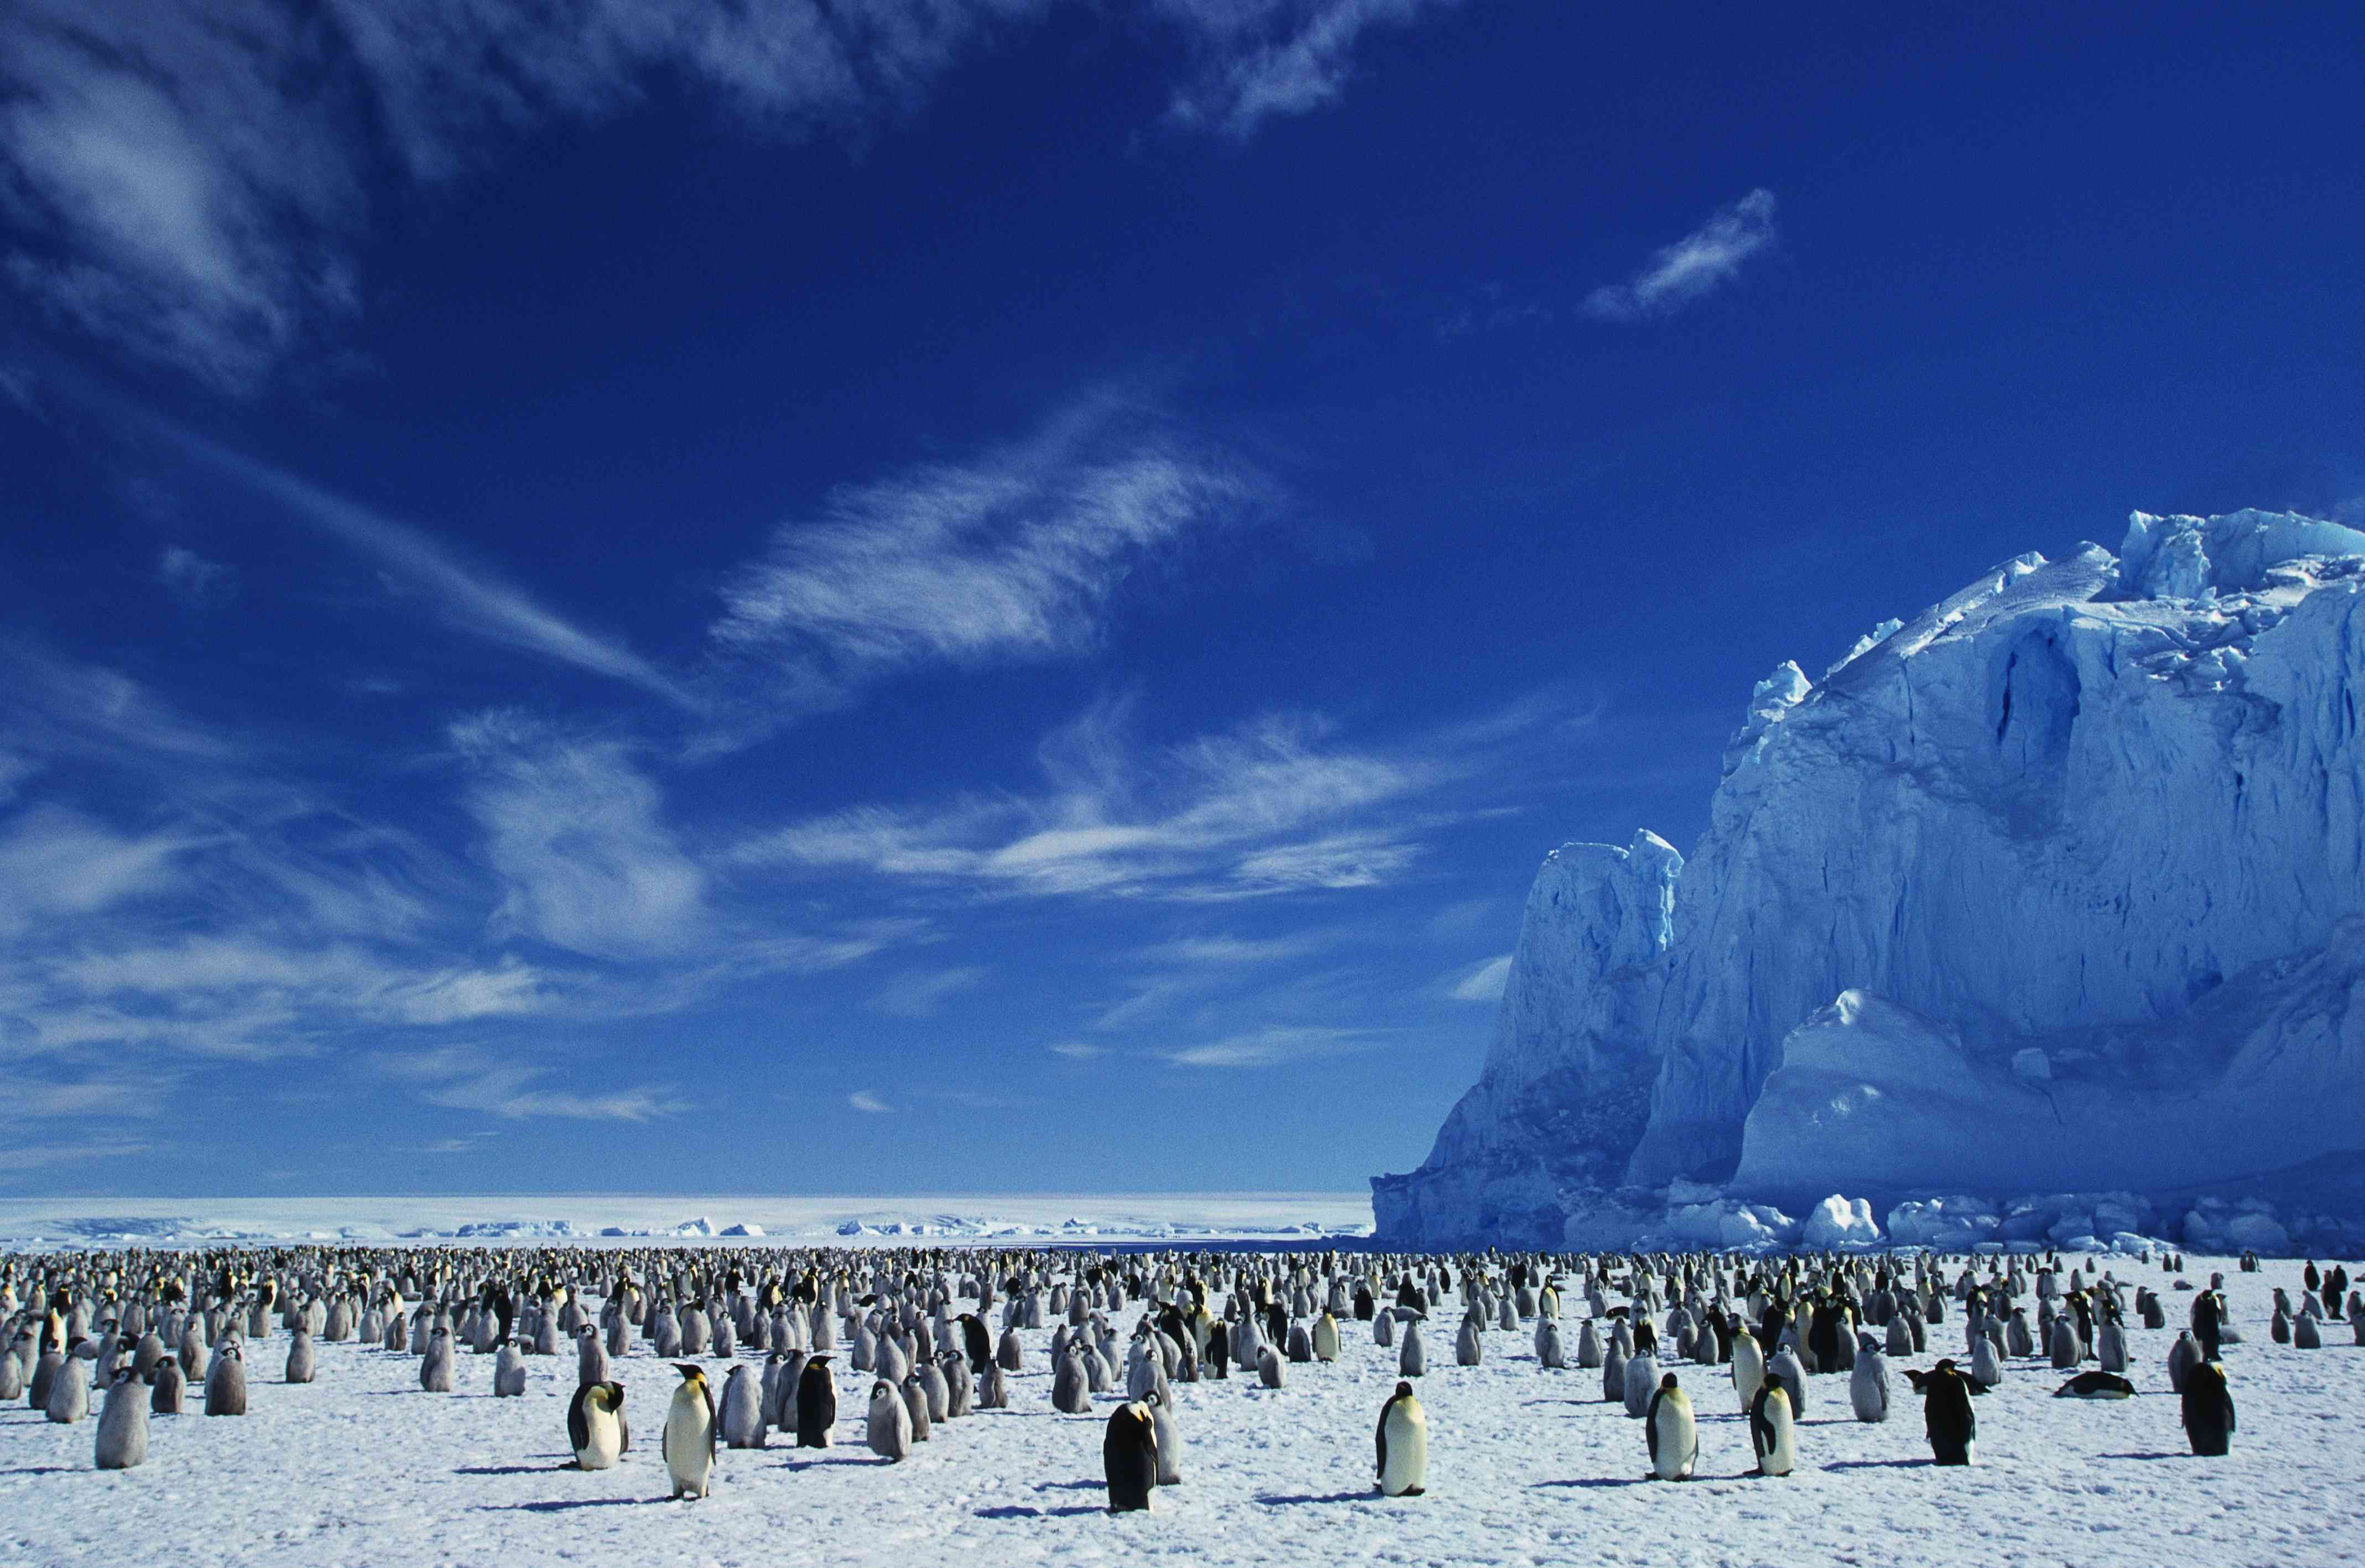 A colony of emperor penguins on an ice sheet in Antarctica